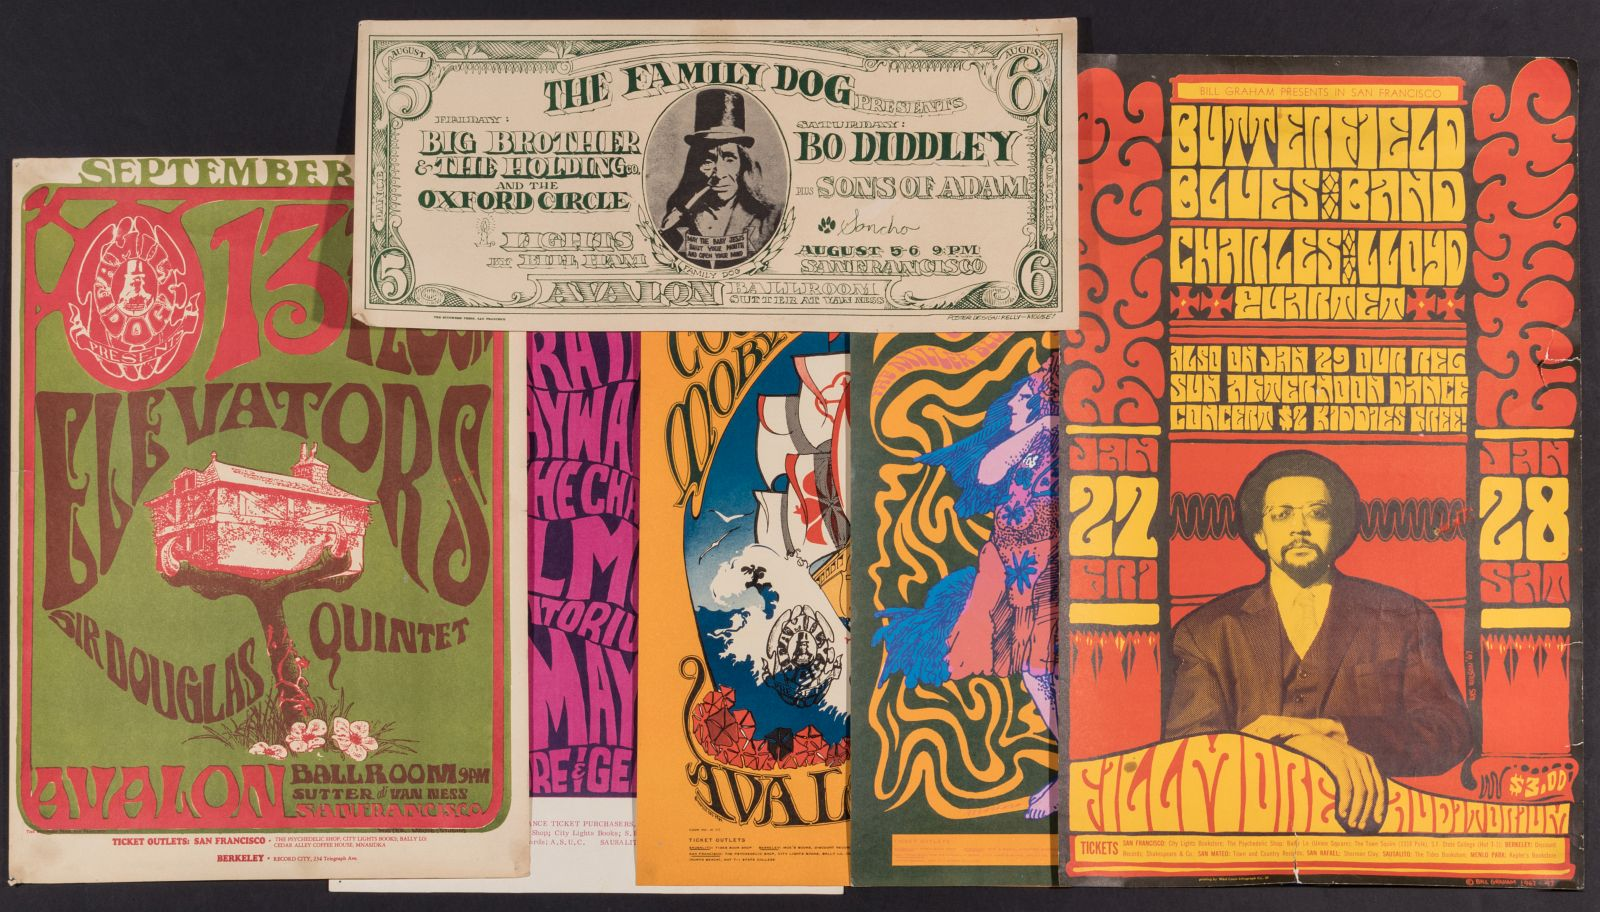 7125: A COLLECTION OF 1960s PSYCHEDELIC CONCERT POSTERS